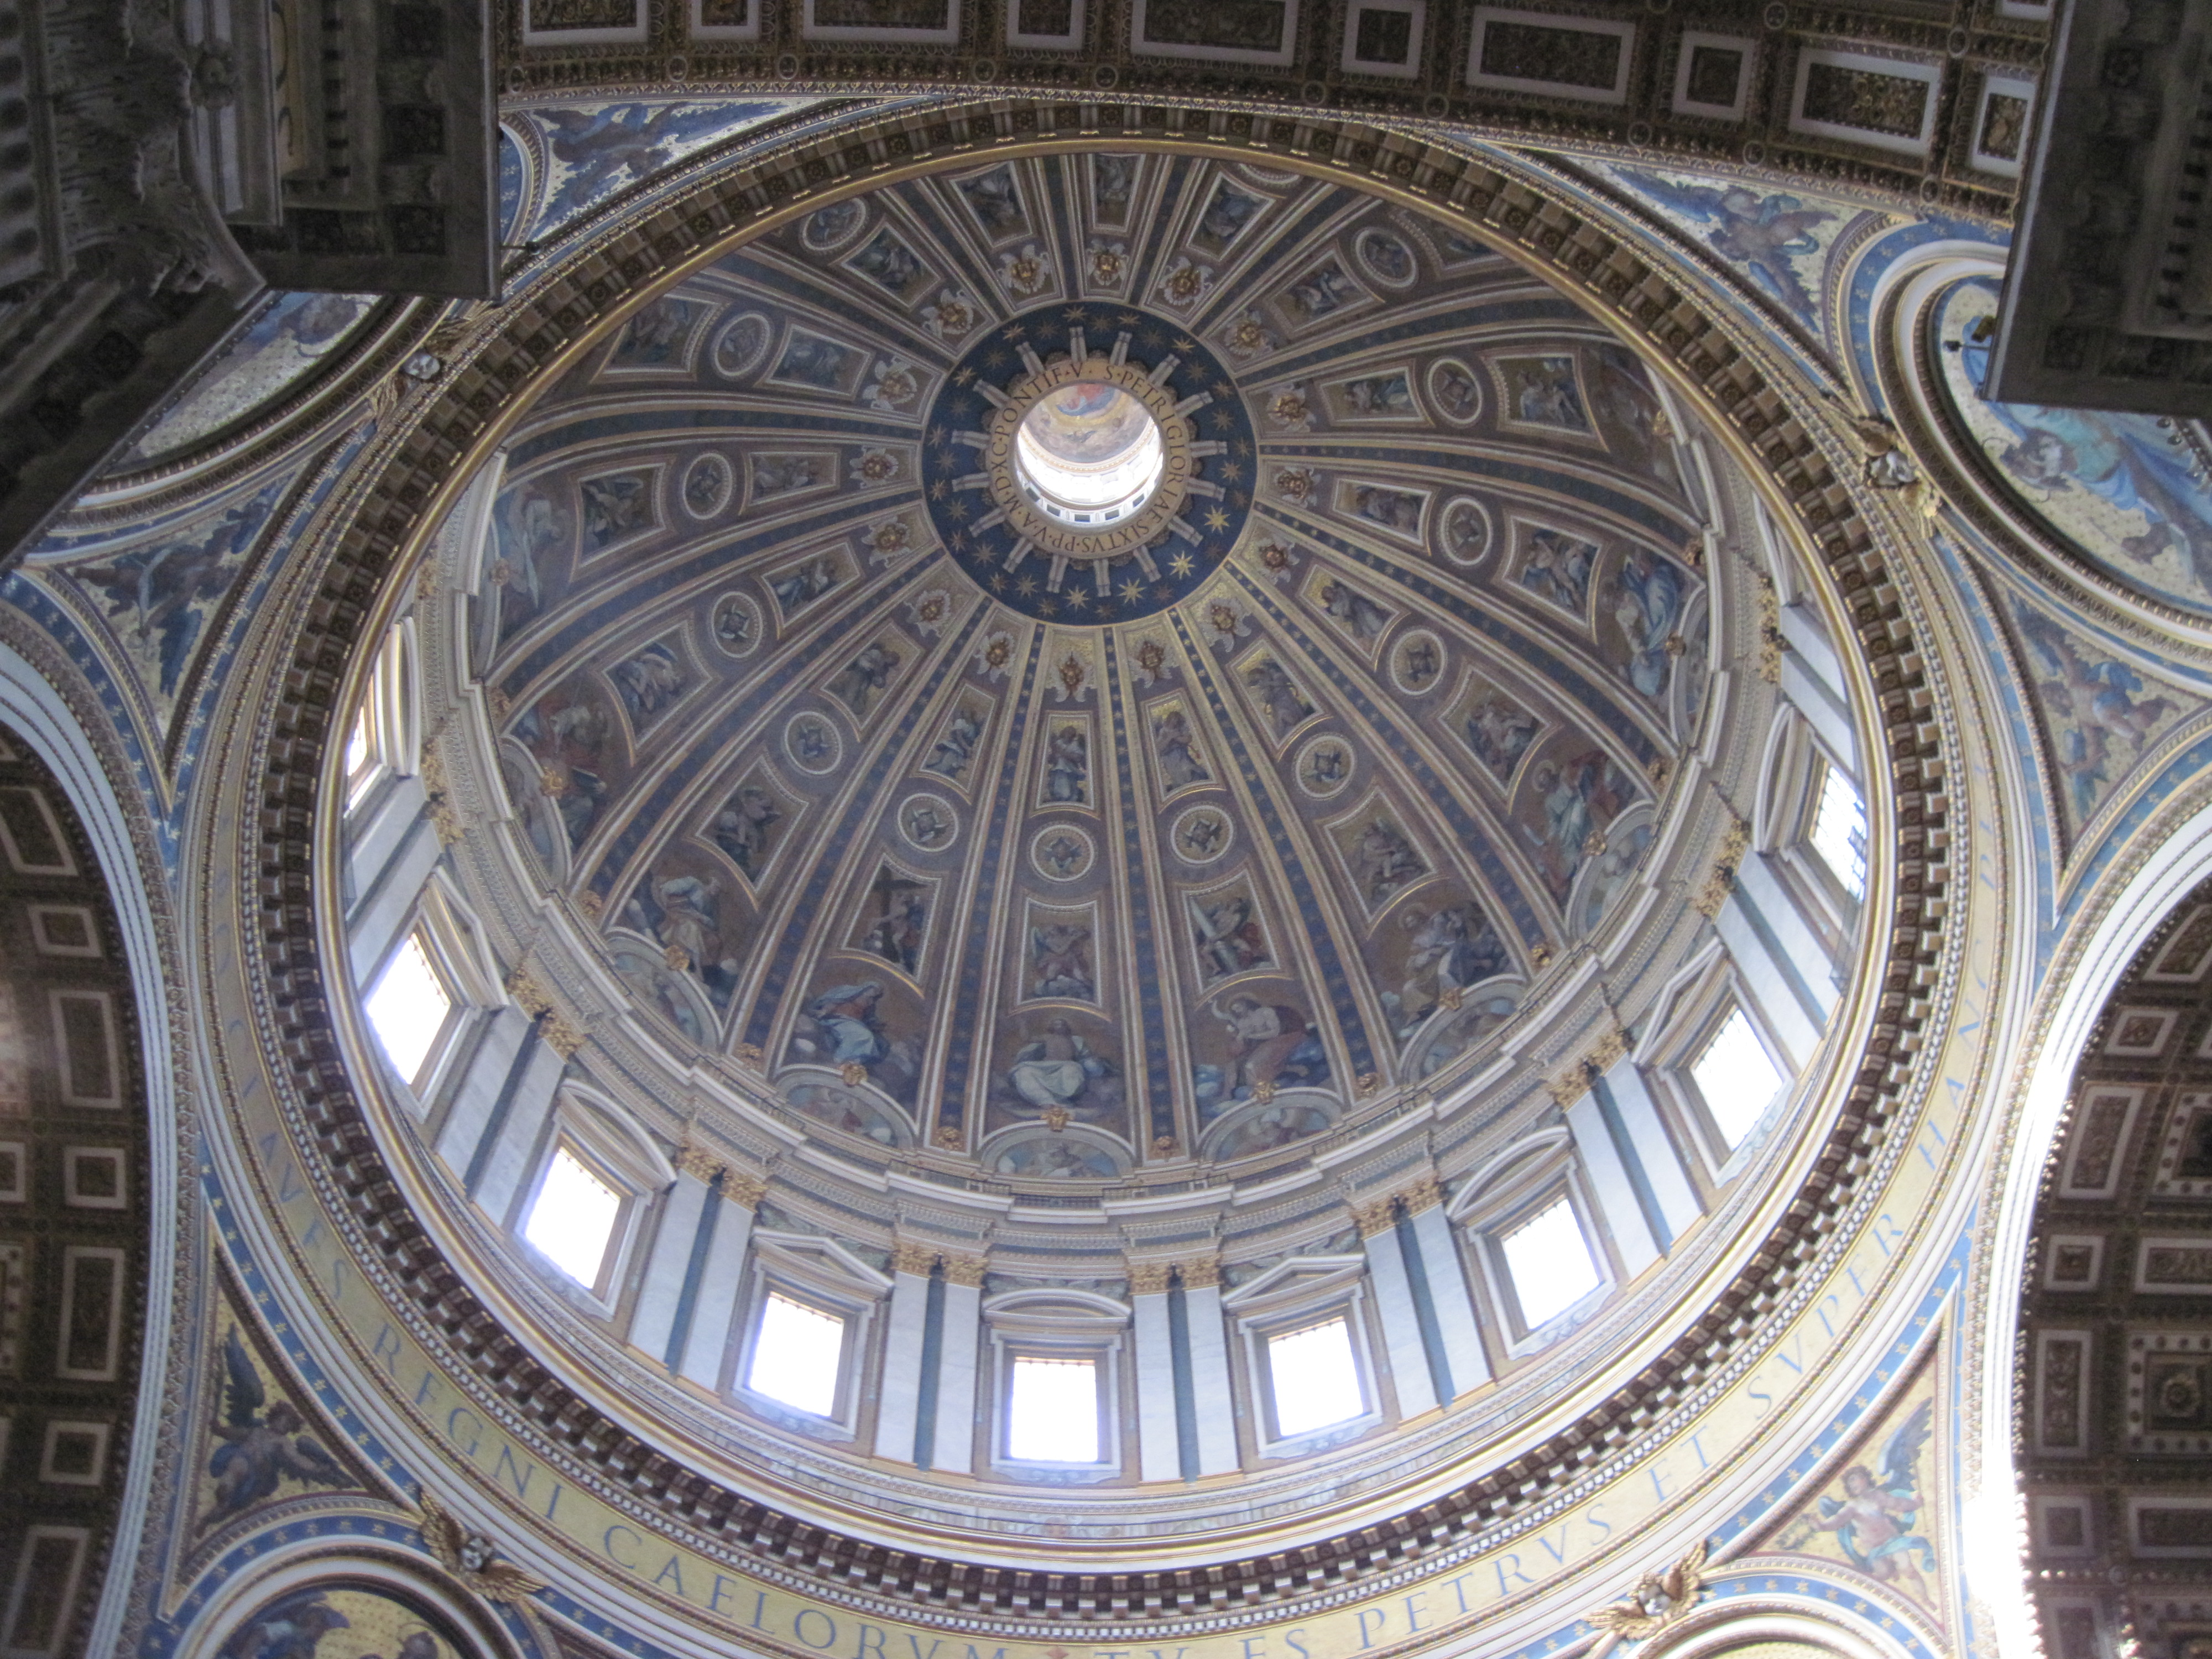 St peter's basilica dome photo